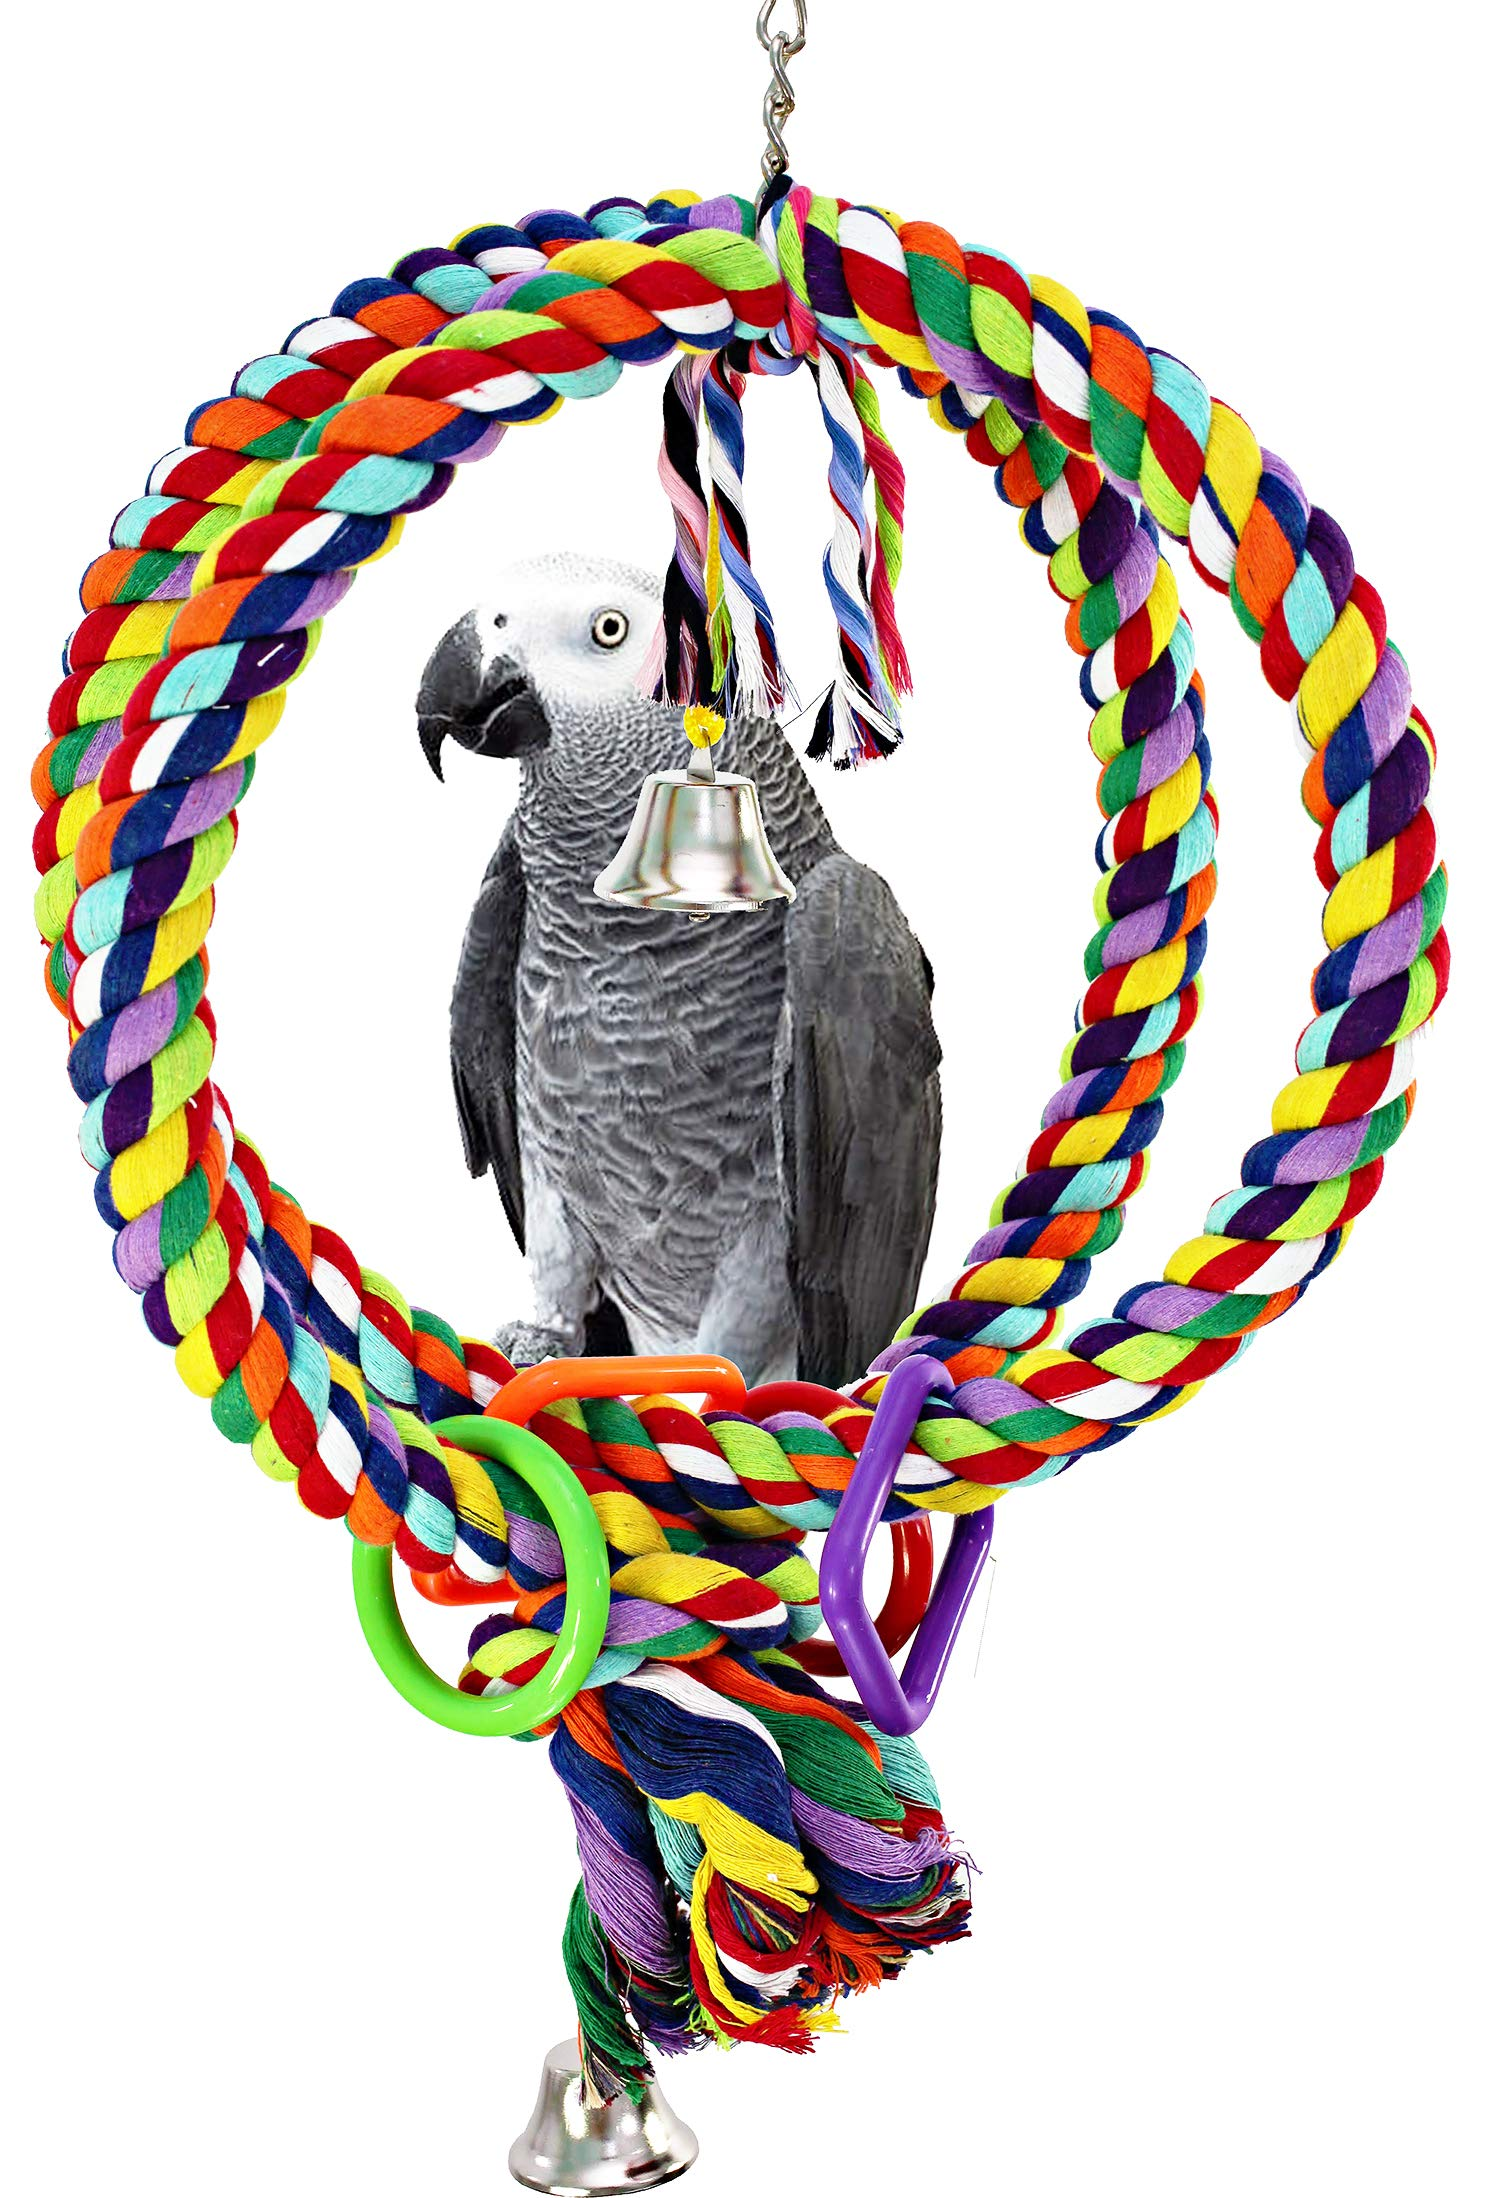 Bonka Bird Toys 1036 Globe Rope Ring Swing by Bonka Bird Toys